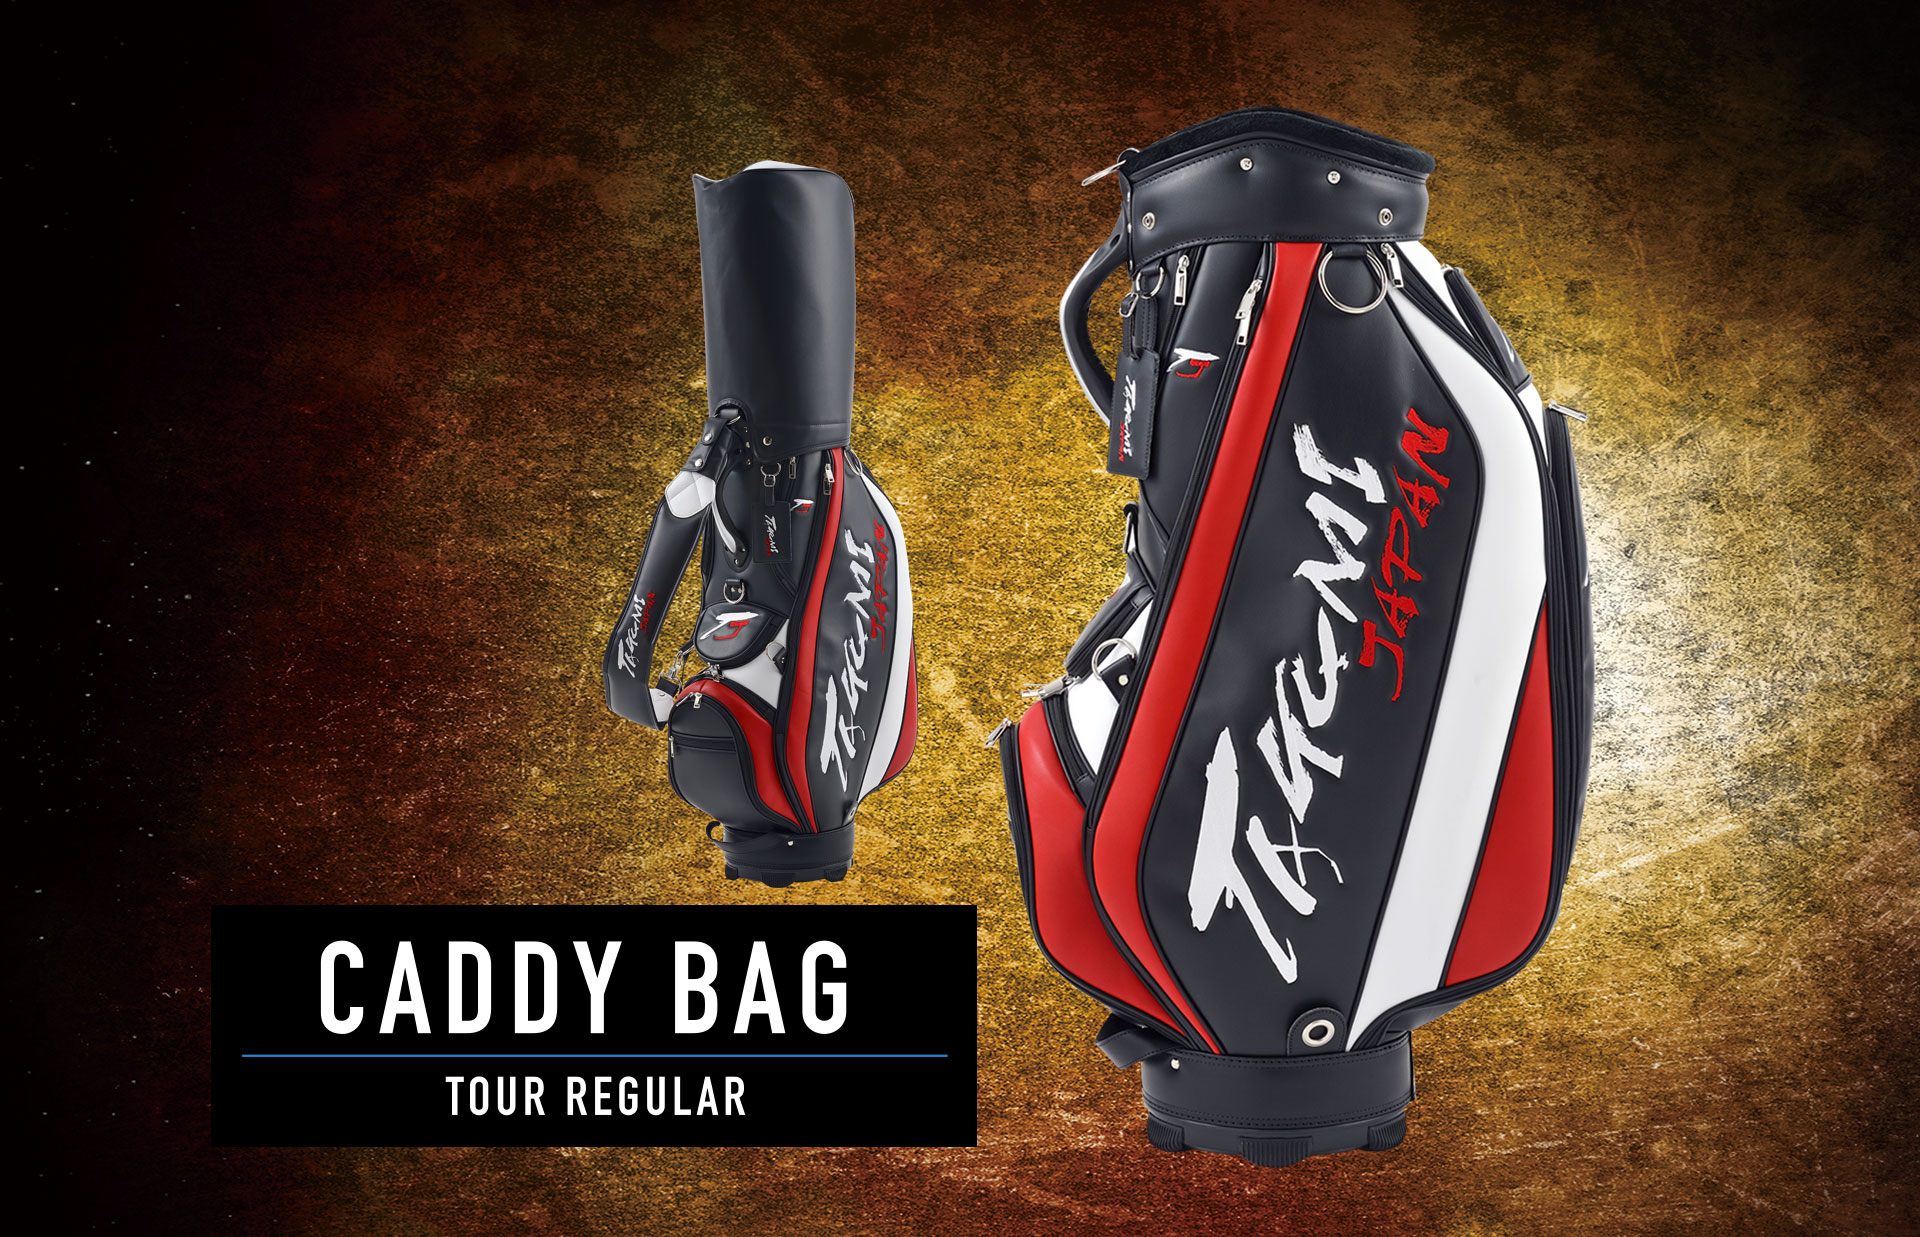 CADDY BAG TOUR REGULAR